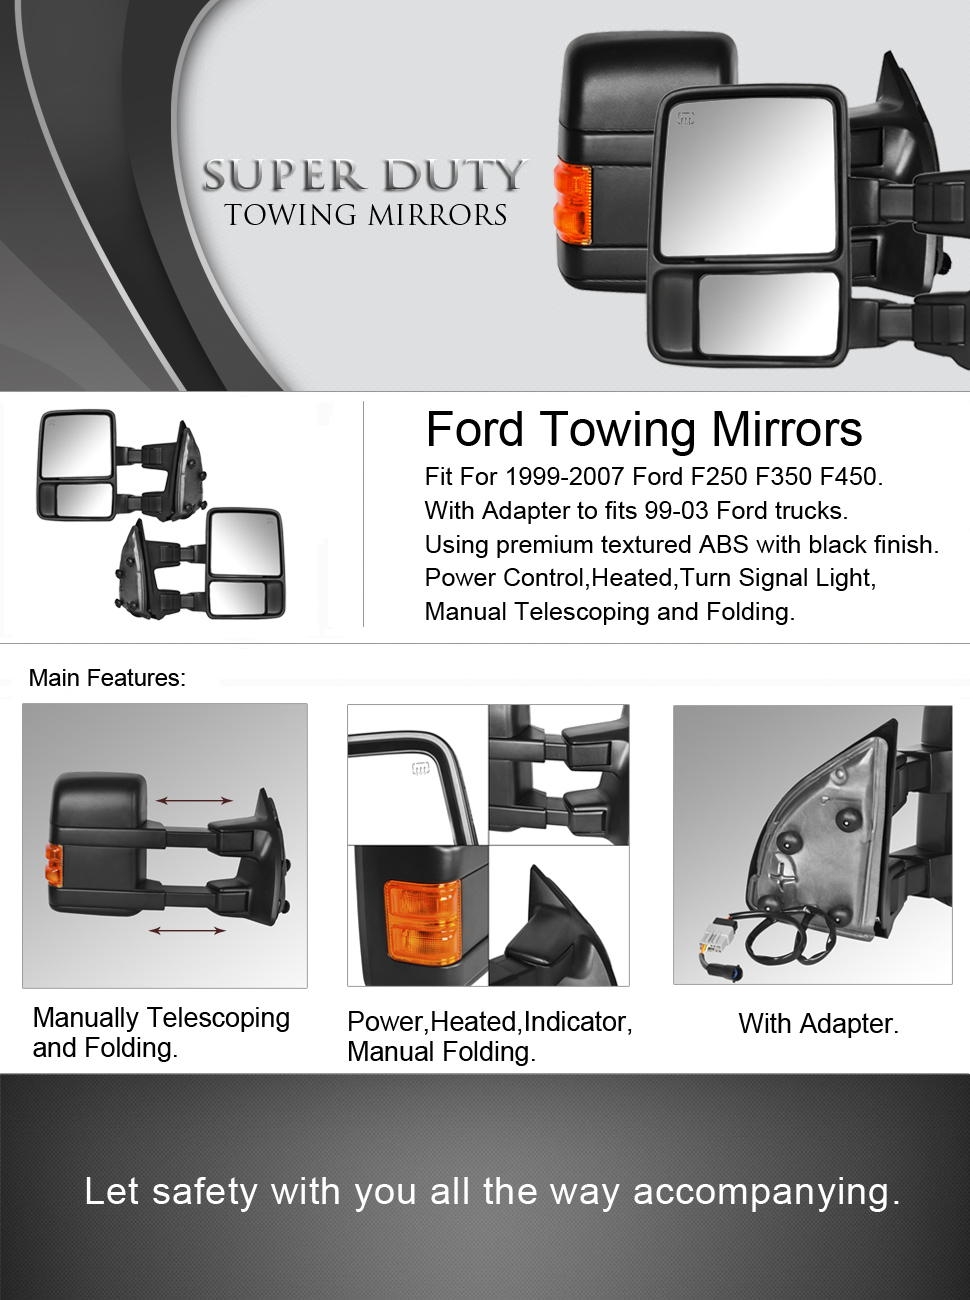 3e4EMyExQyWq._UX970_TTW_ amazon com dedc ford towing mirrors f250 ford tow mirrors f350 Super Duty Plasti Dip at panicattacktreatment.co